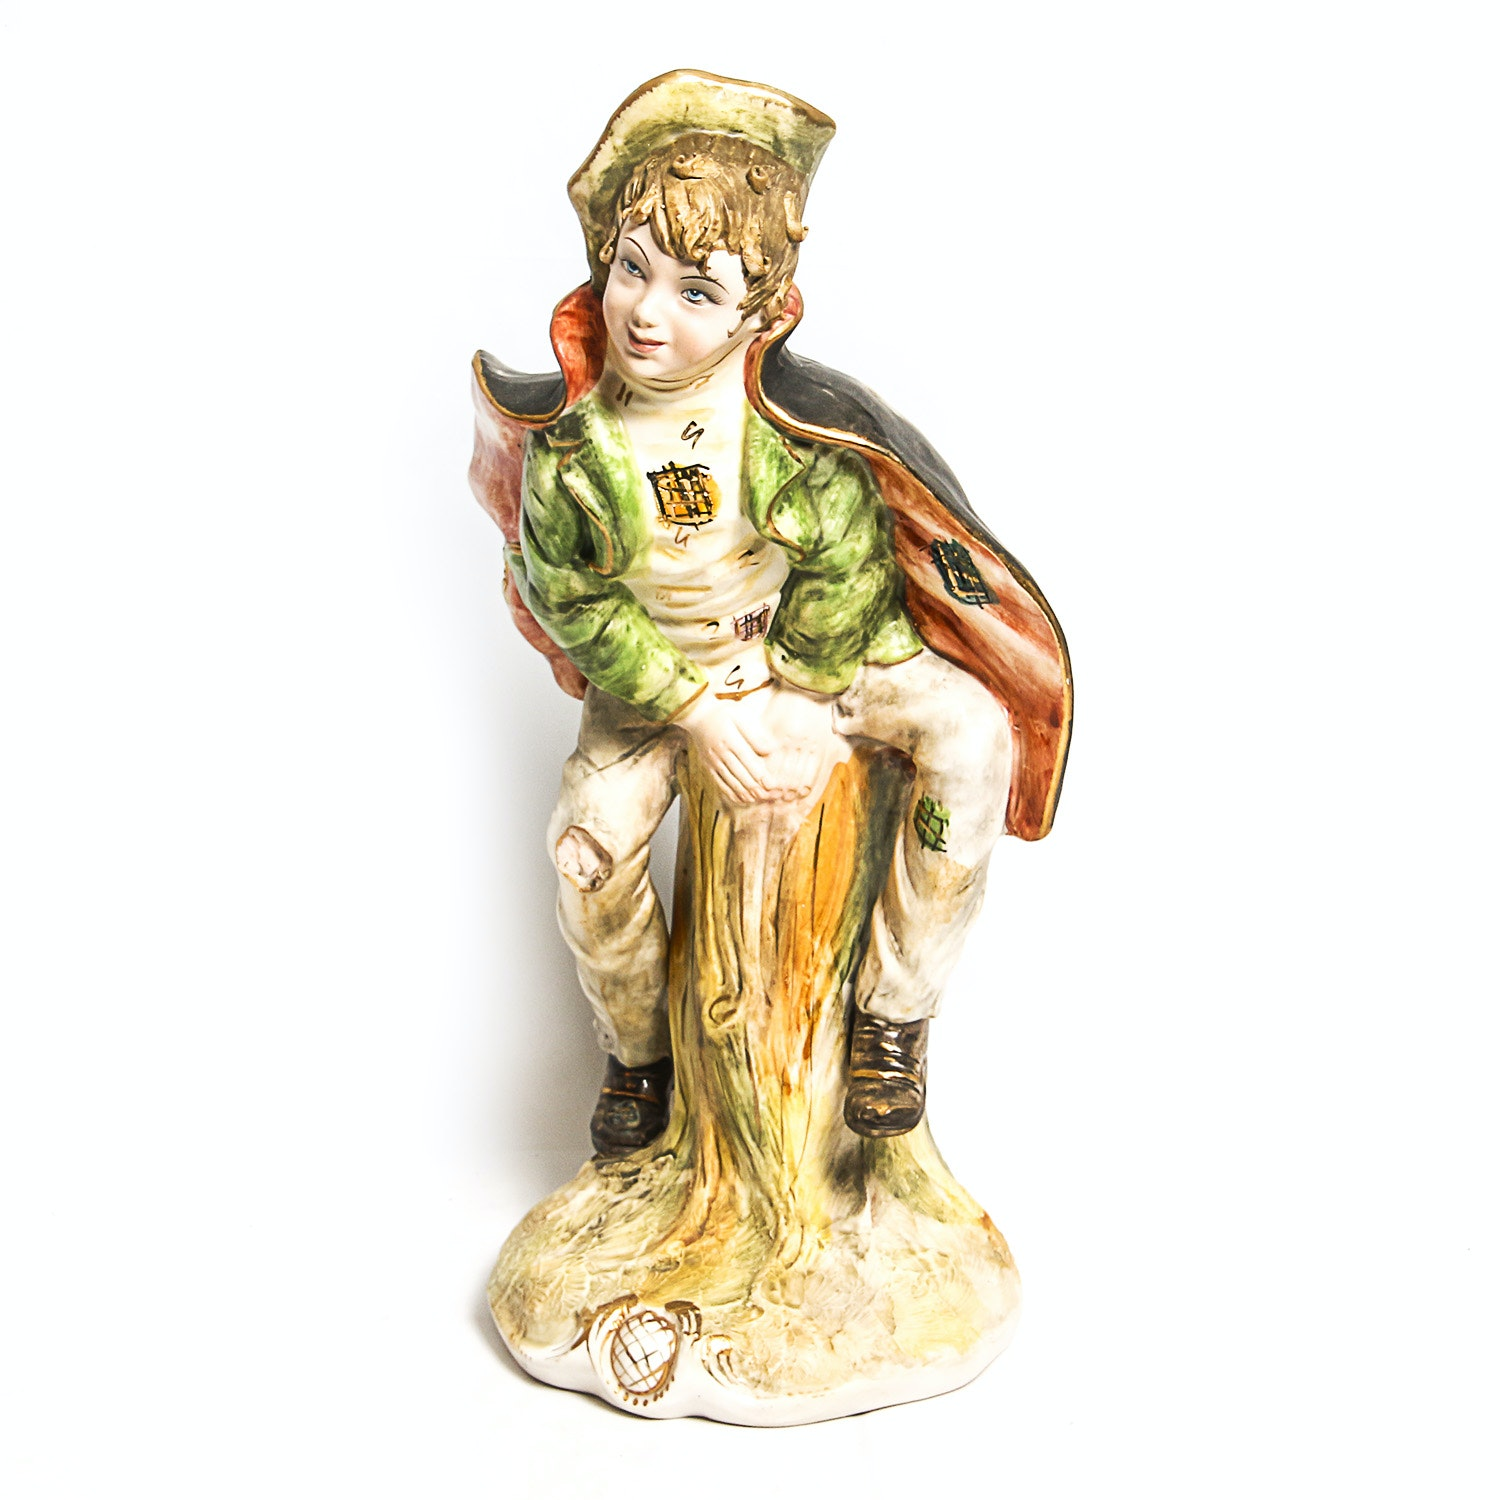 Vintage Italian Hand Painted Figurine of a Boy